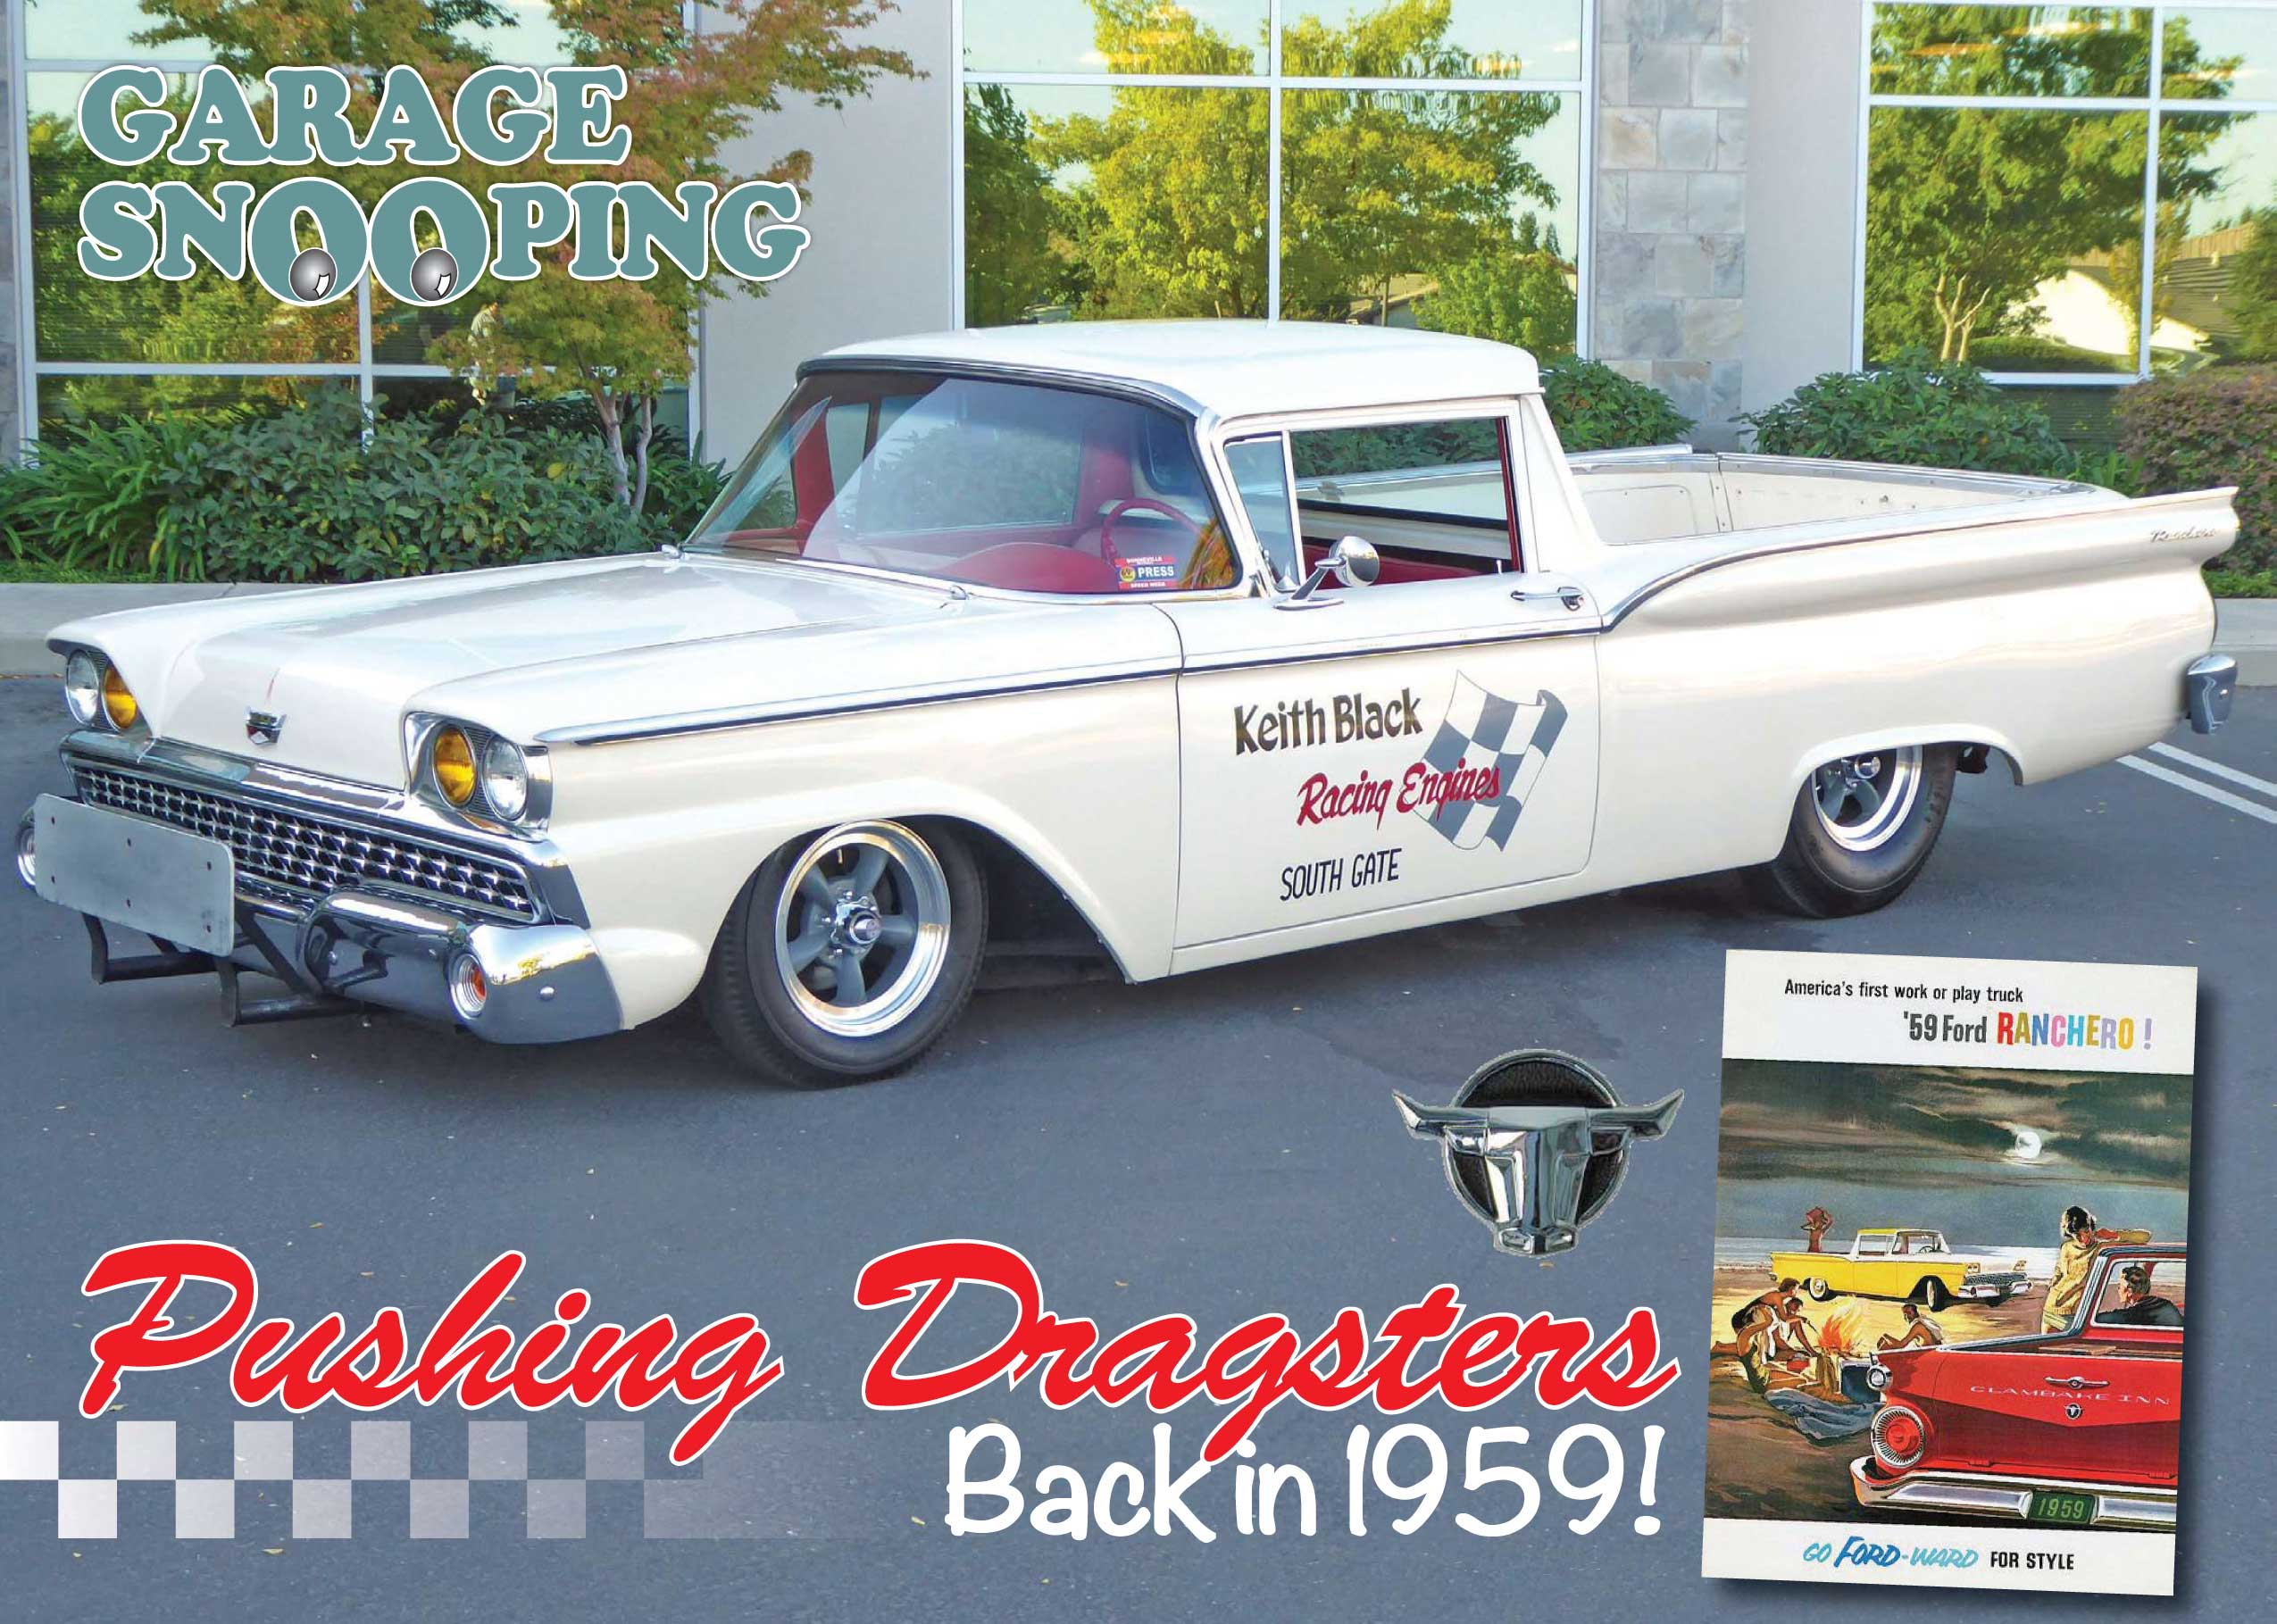 Garage snooping pushing dragsters back in 1959 cruisin for Garage ford 59